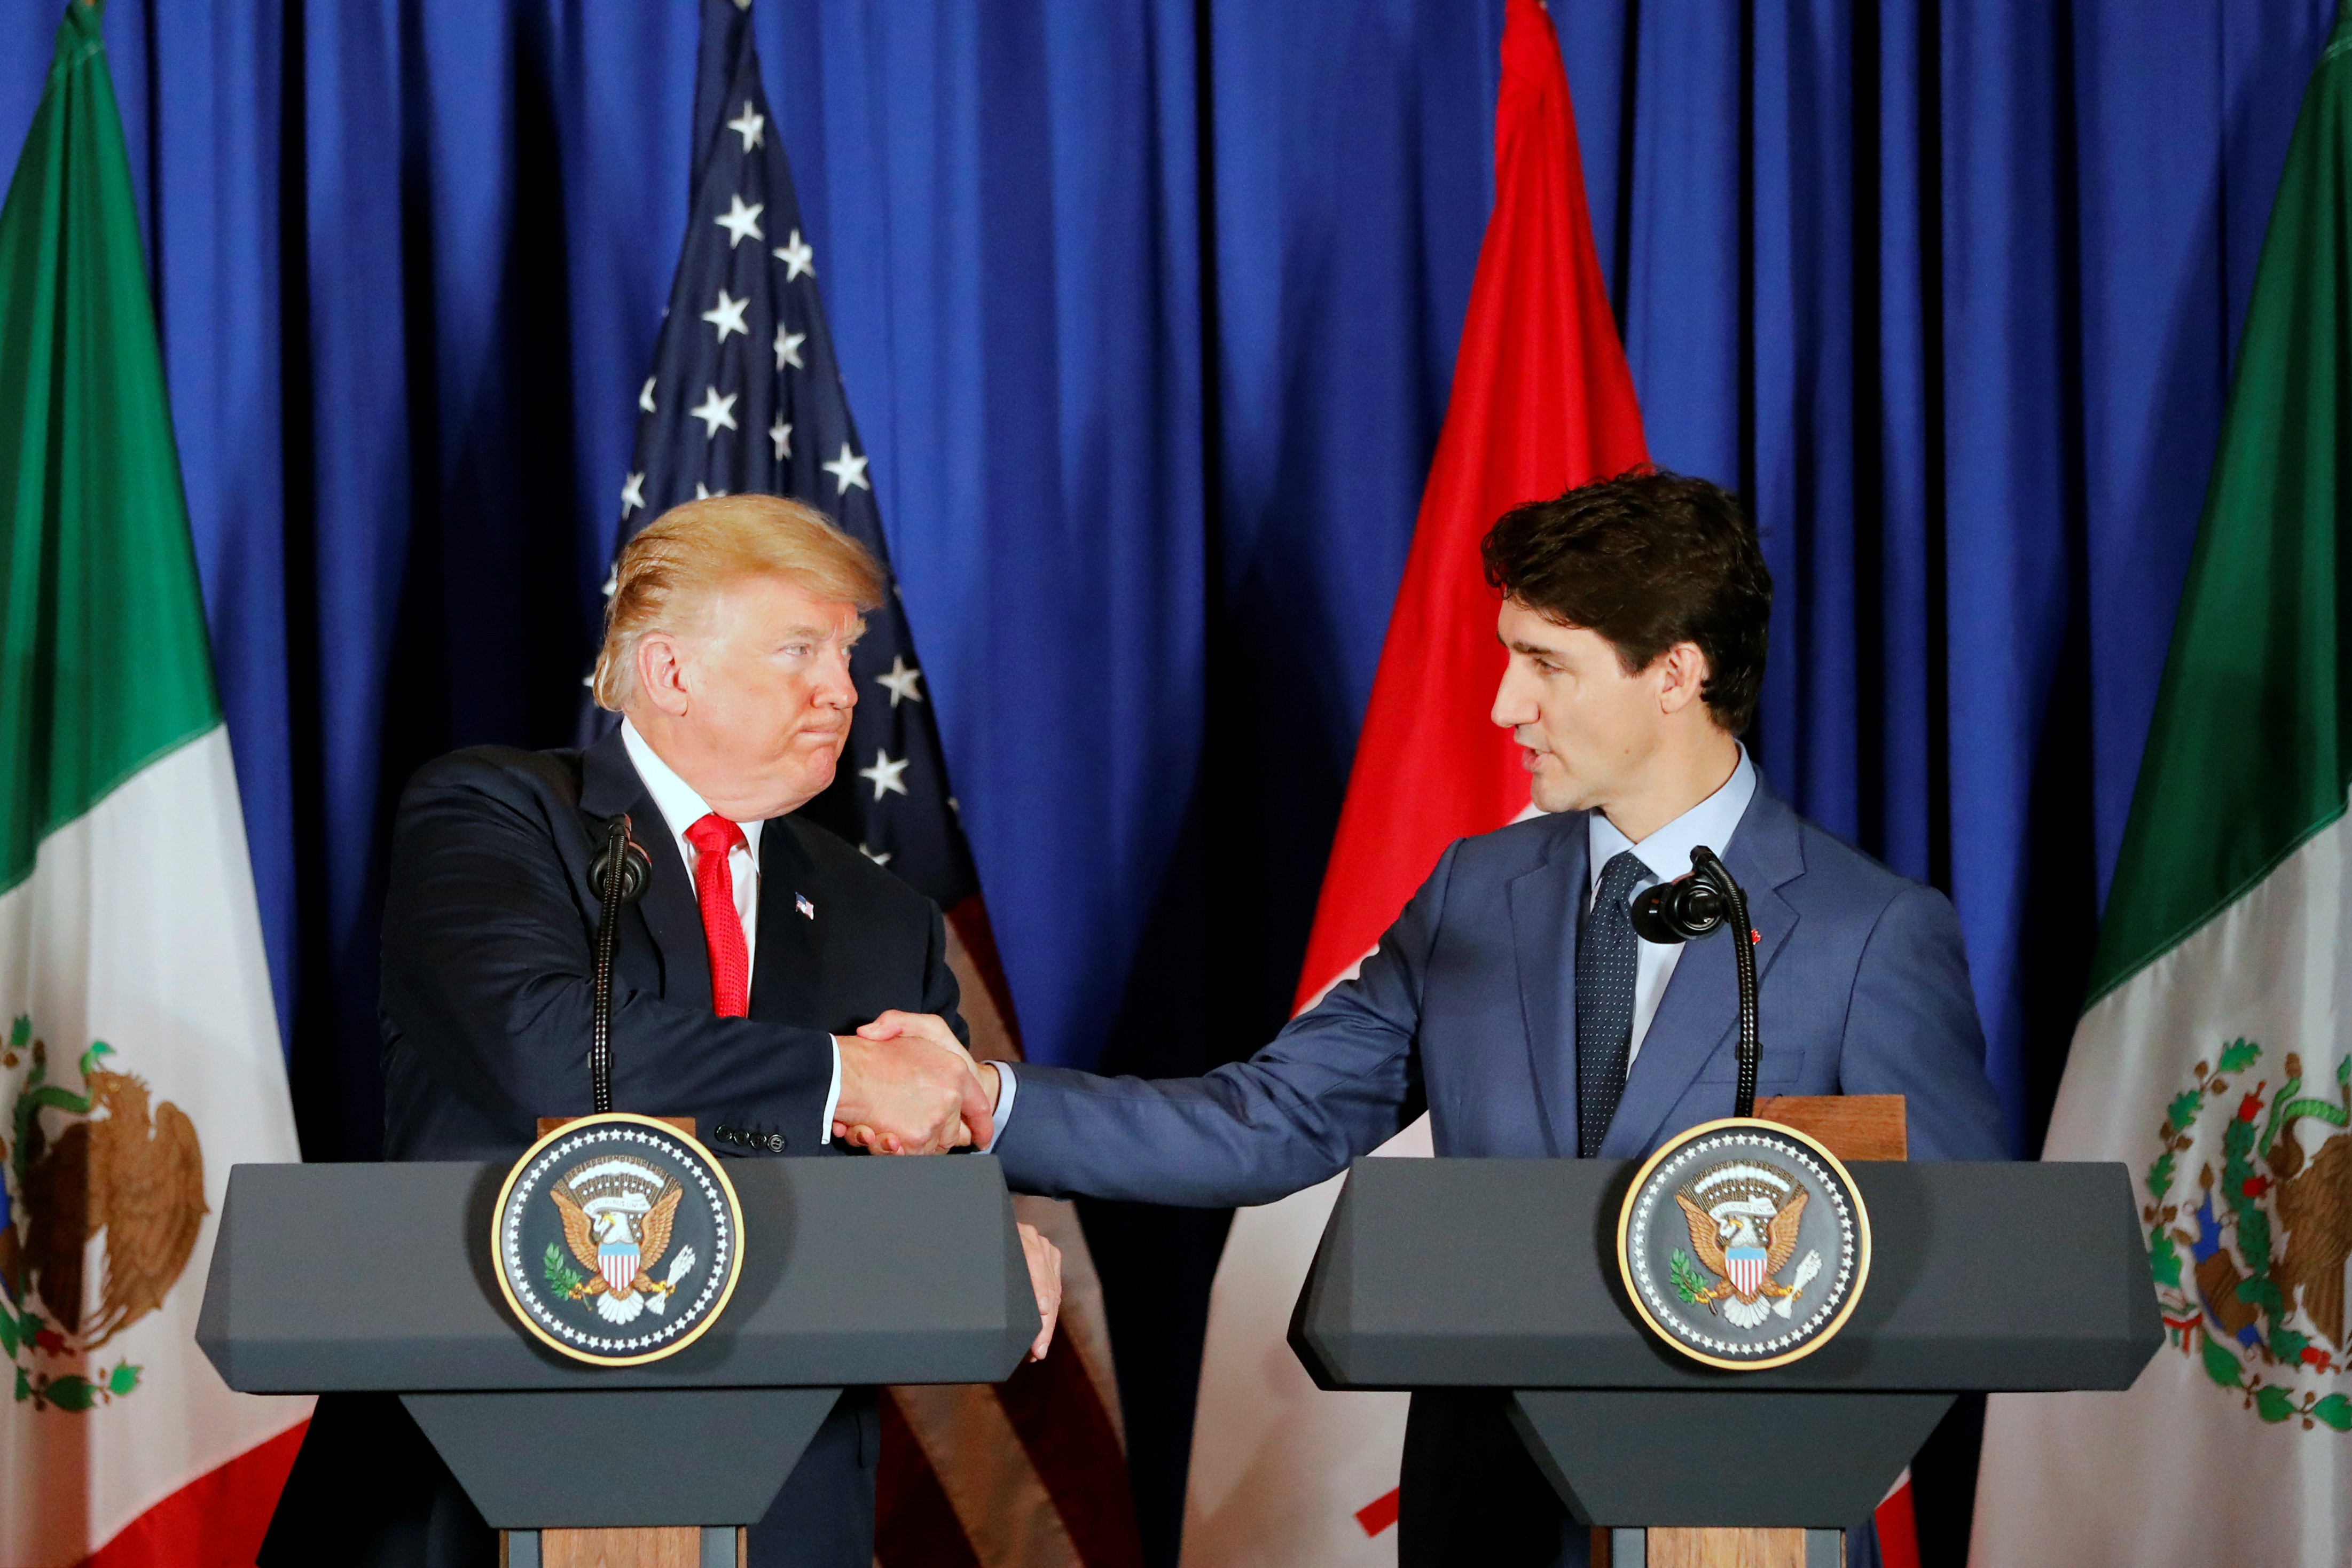 U.S. President Donald Trump shake hand with Canada's Prime Minister Justin Trudeau as they attend the USMCA signing ceremony together with Mexico's President Enrique Pena Nieto before the G20 leaders summit in Buenos Aires, Argentina November 30, 2018. REUTERS/Andres Stapff